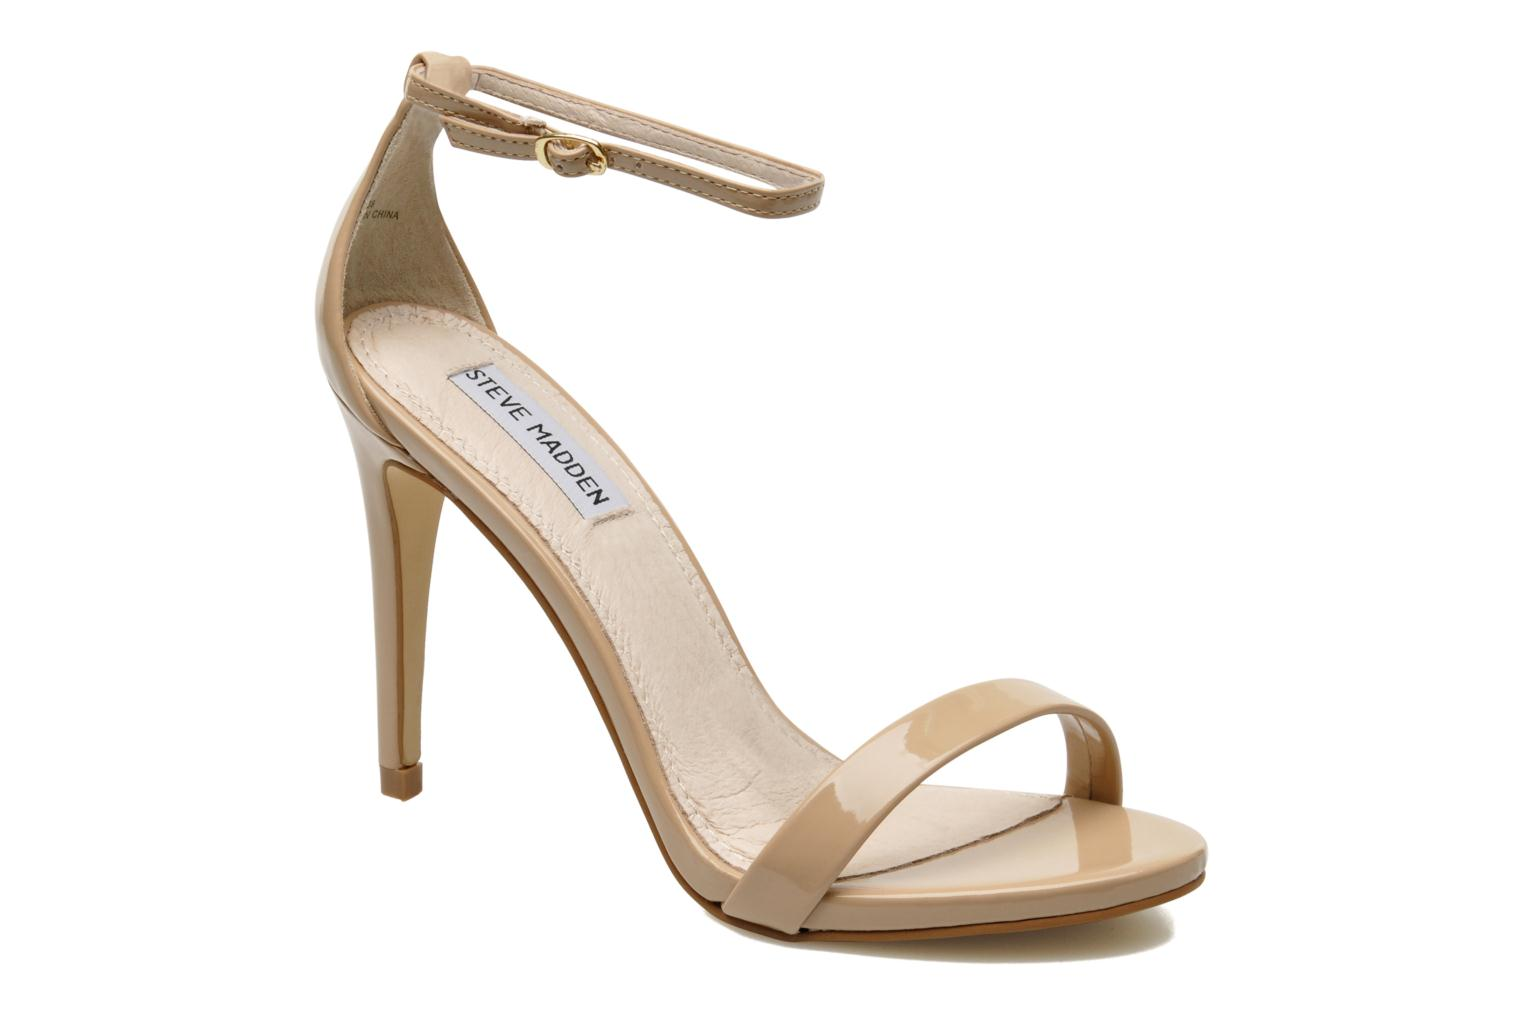 Stecy Sandal 09004 Blush Multi Patent